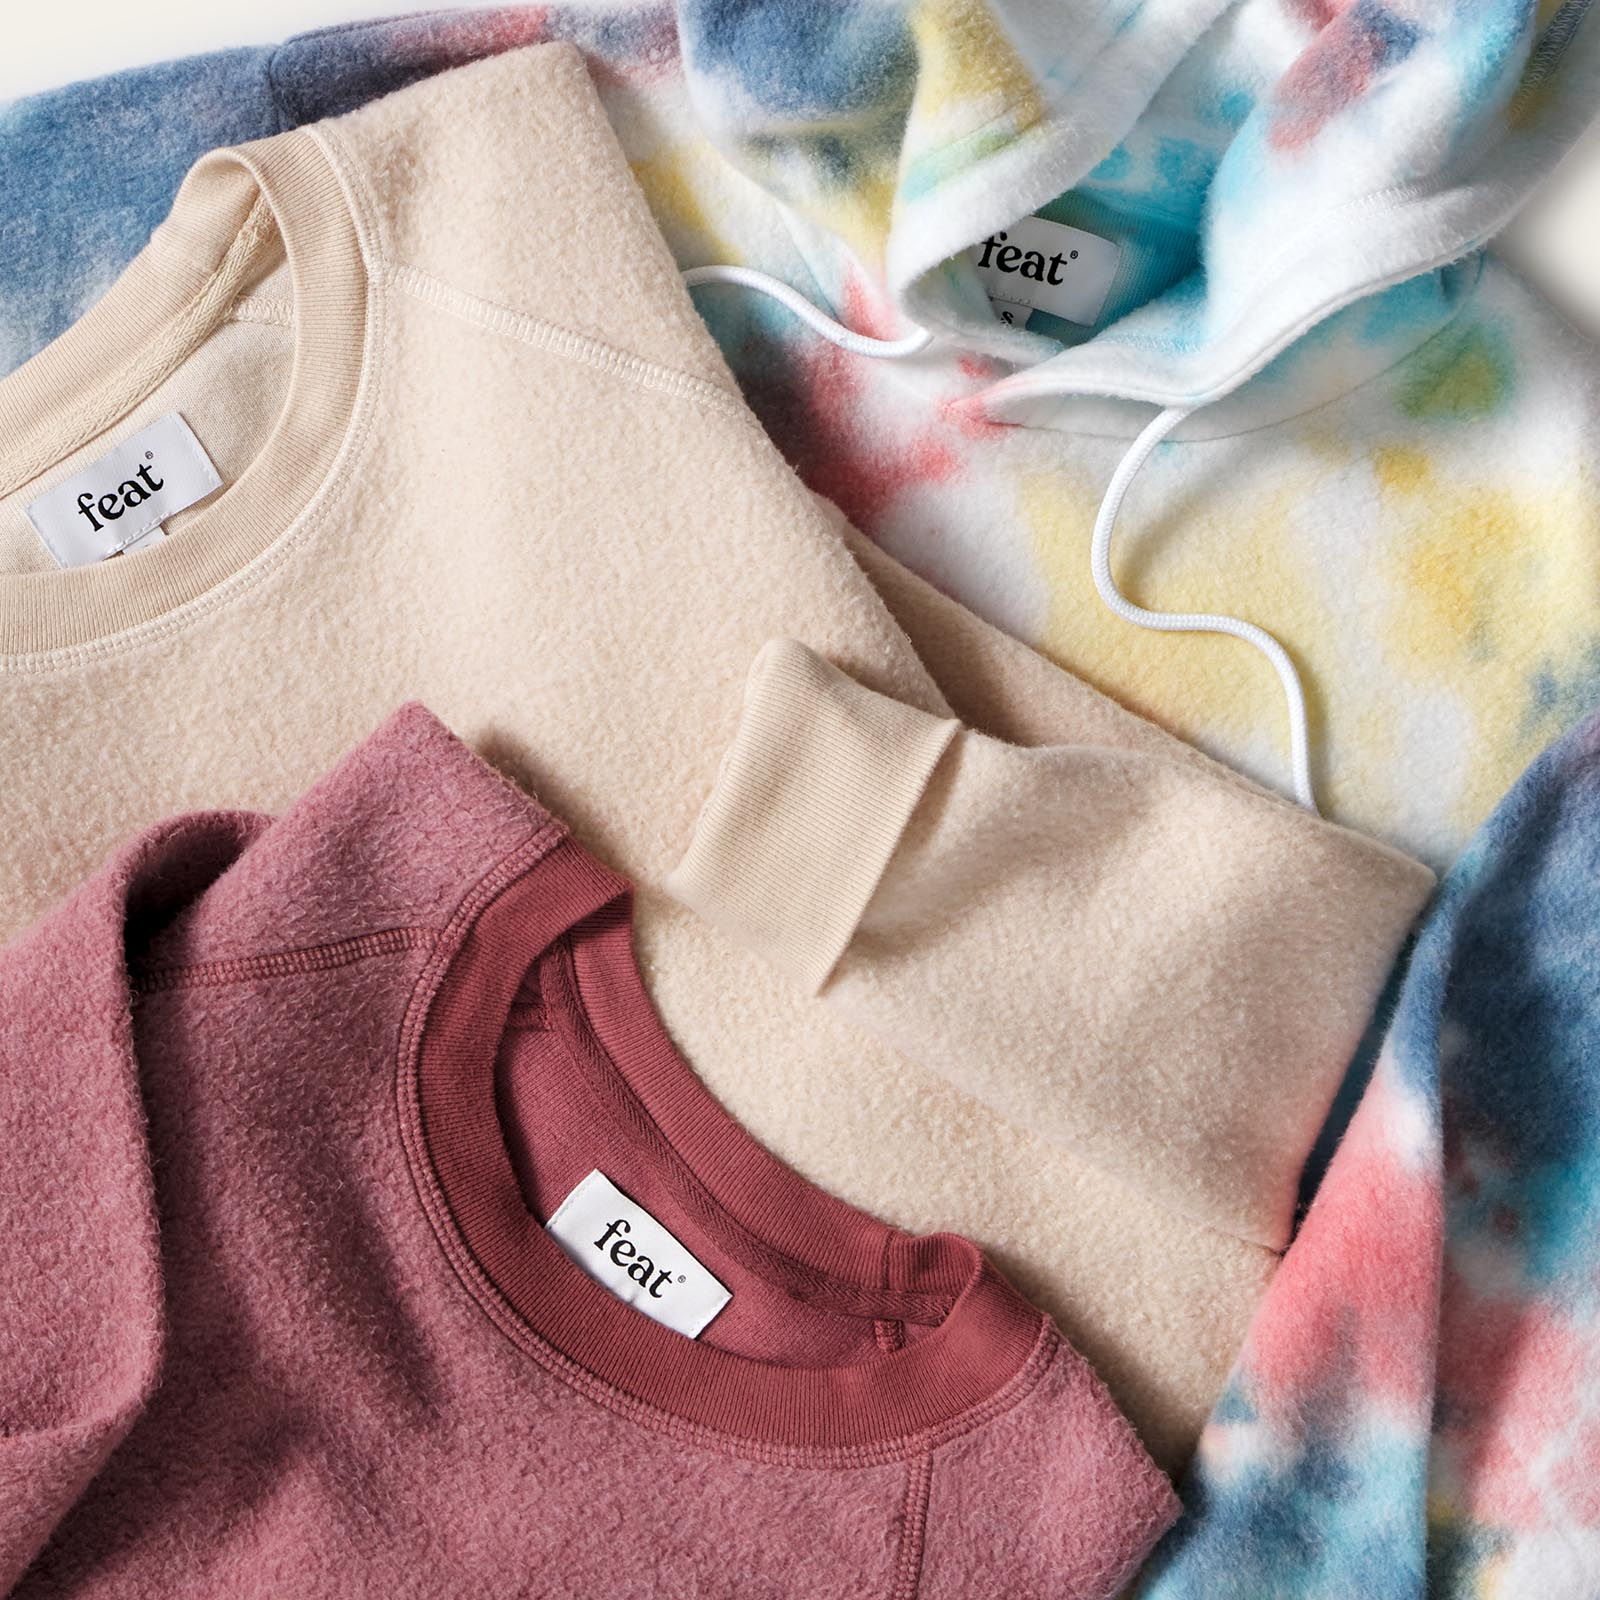 Flat-Lay-Clothing-Photography-Expert